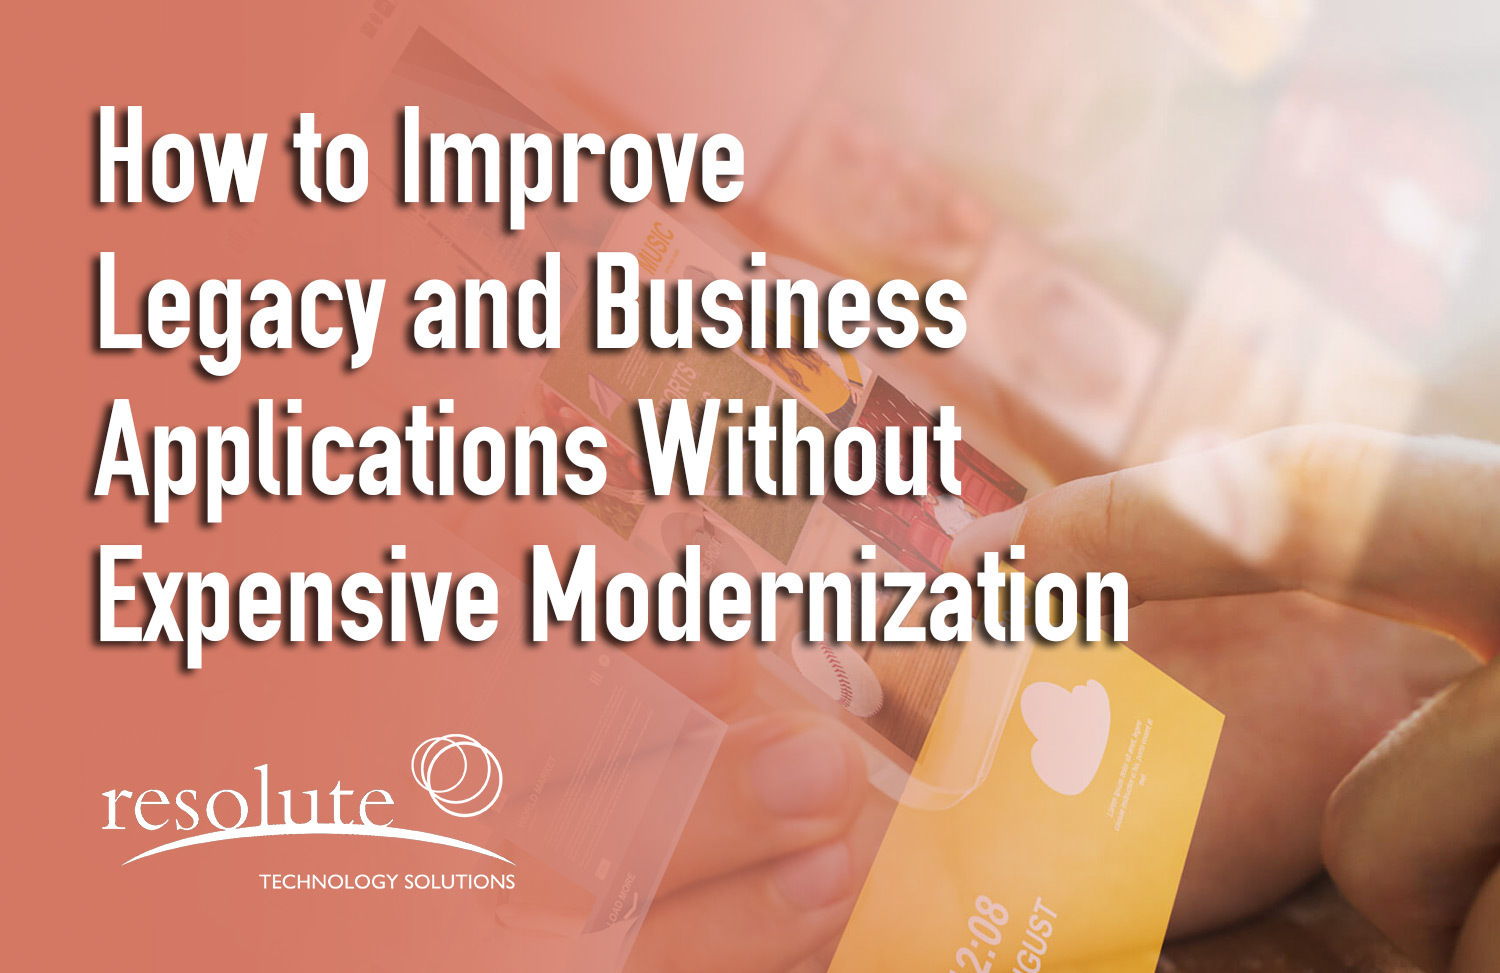 How to Improve Legacy and Business Applications without Expensive Modernization